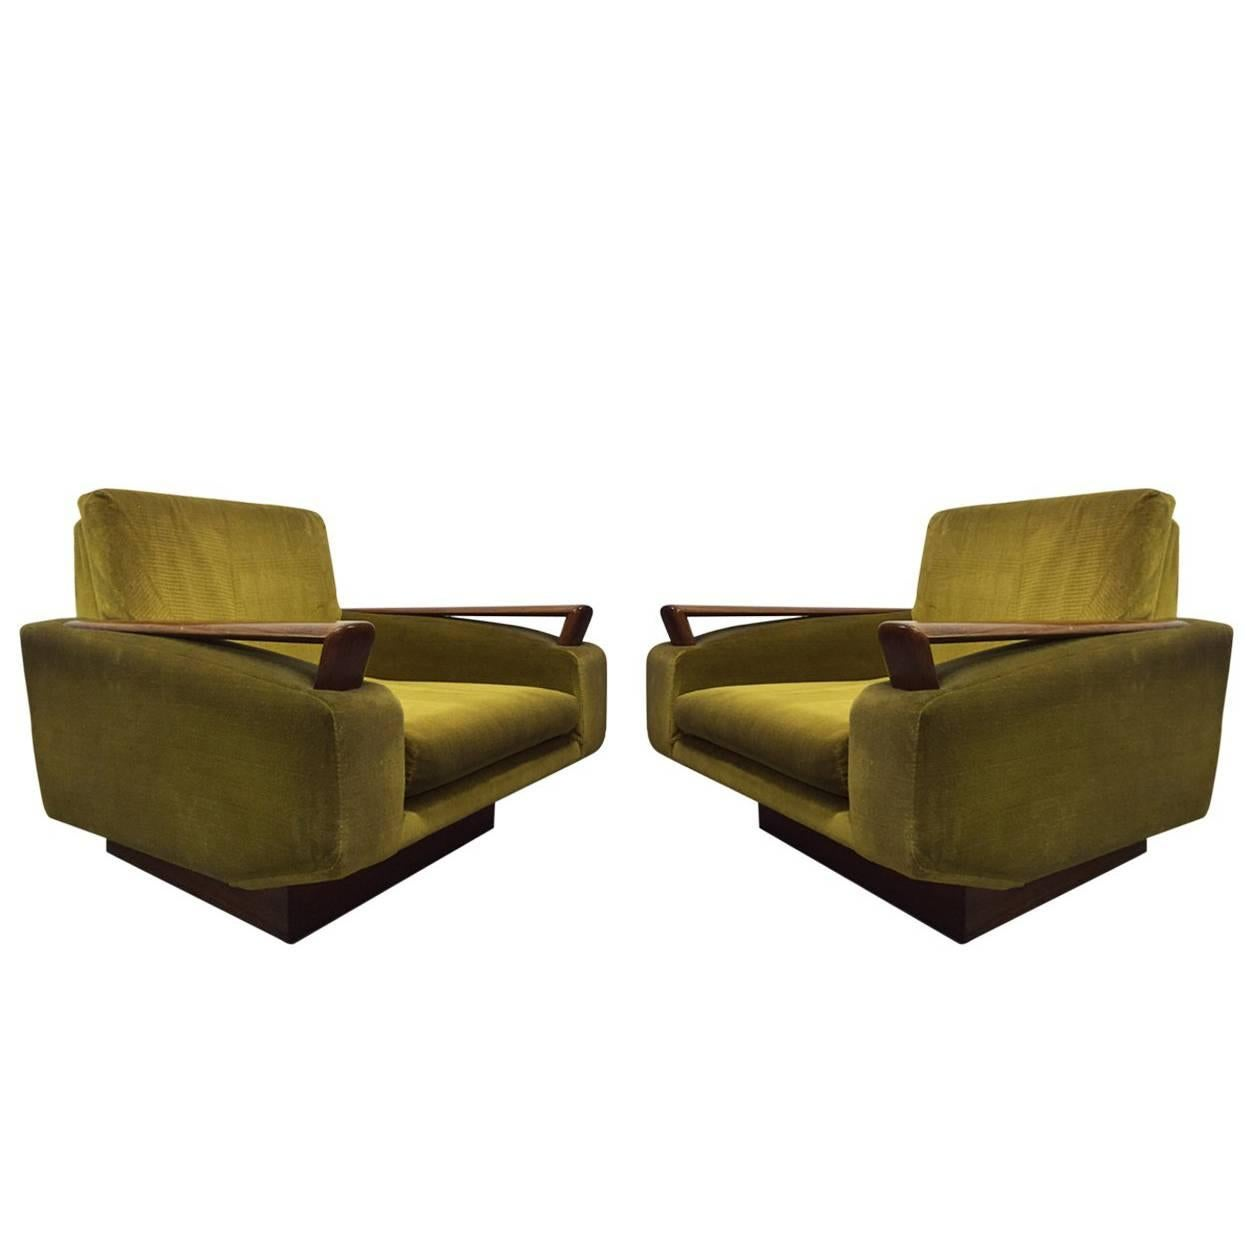 Pair of Jacques Adnet Sculptural Lounge Chairs